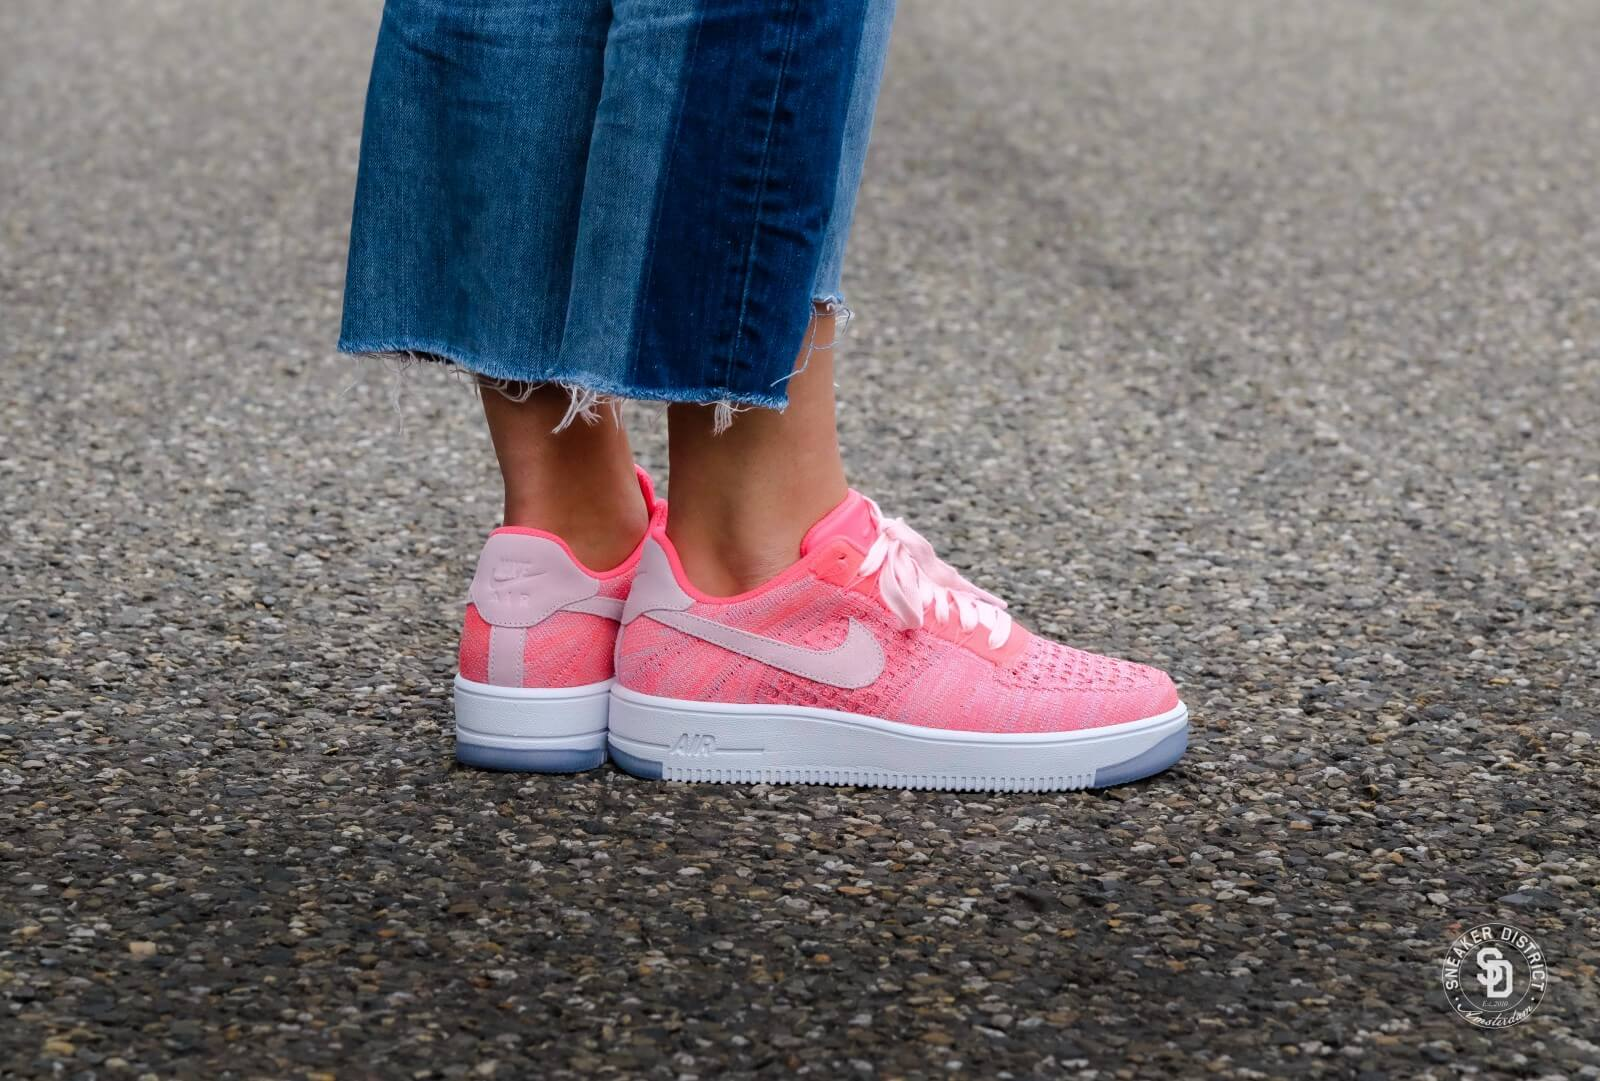 Nike WMNS Air Force 1 Flyknit Low Prism